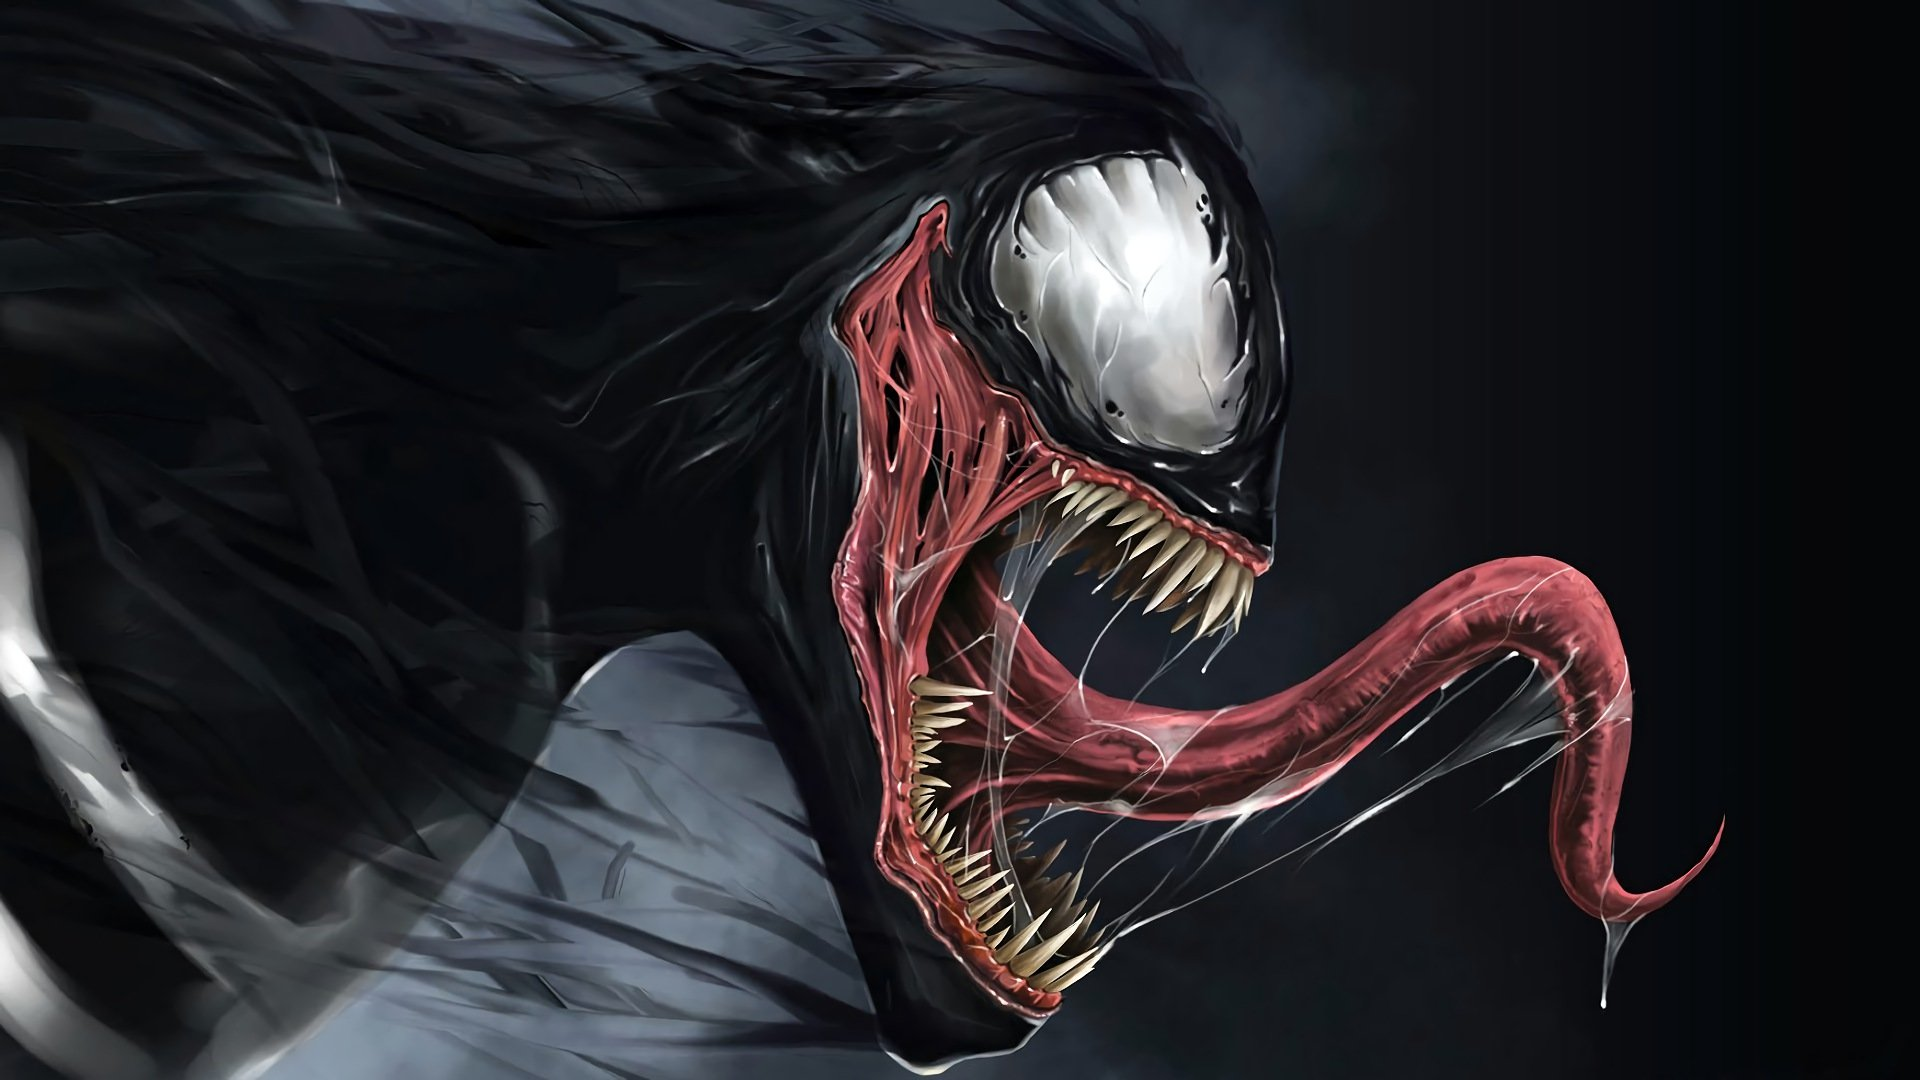 Venom Wallpapers Hd For Desktop Backgrounds